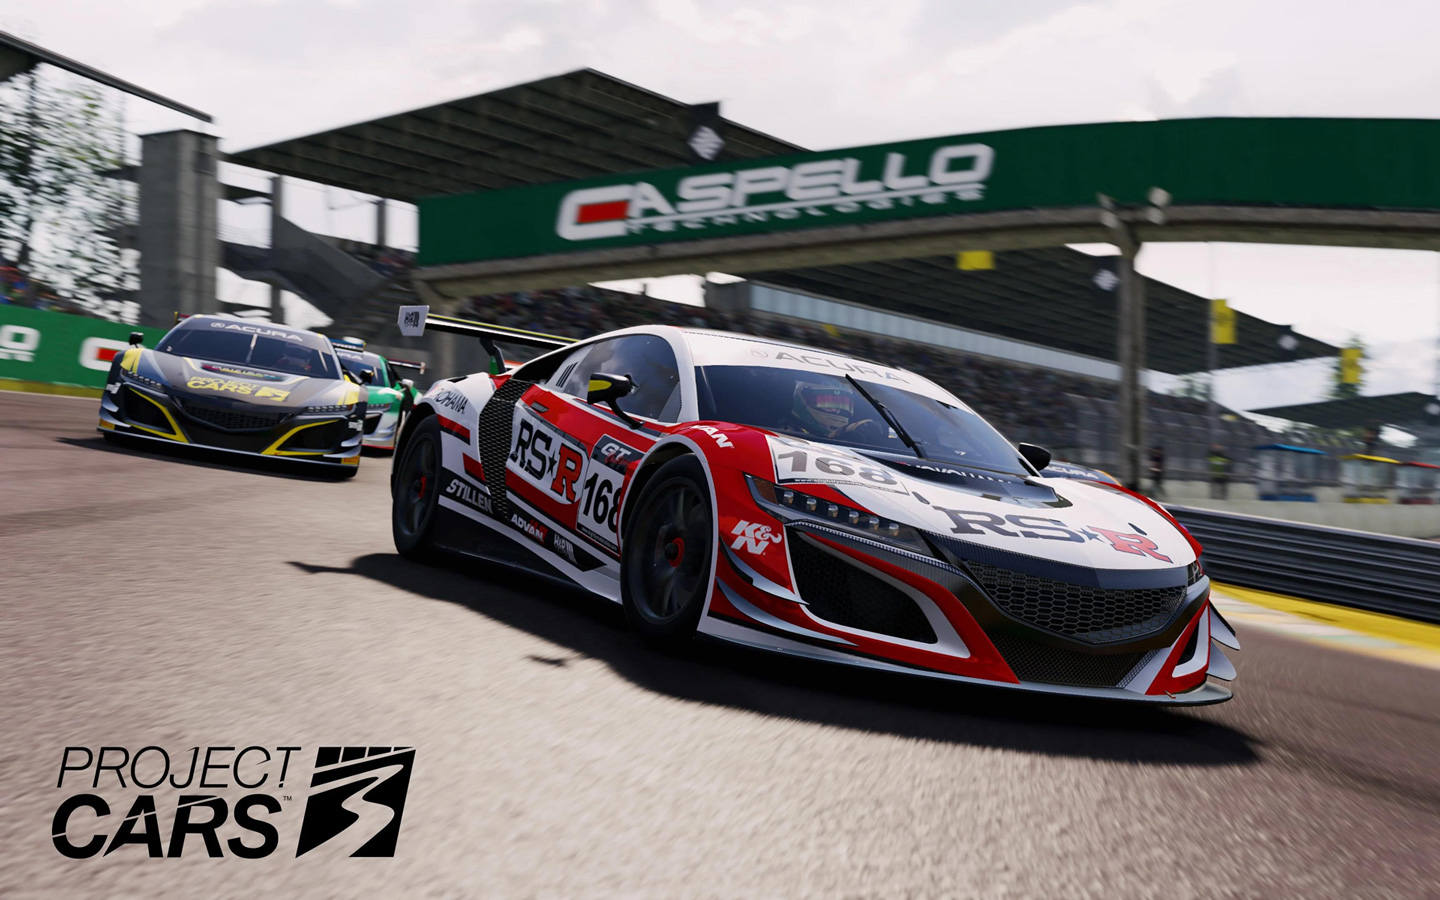 Free Project Cars 3 Wallpaper in 1440x900